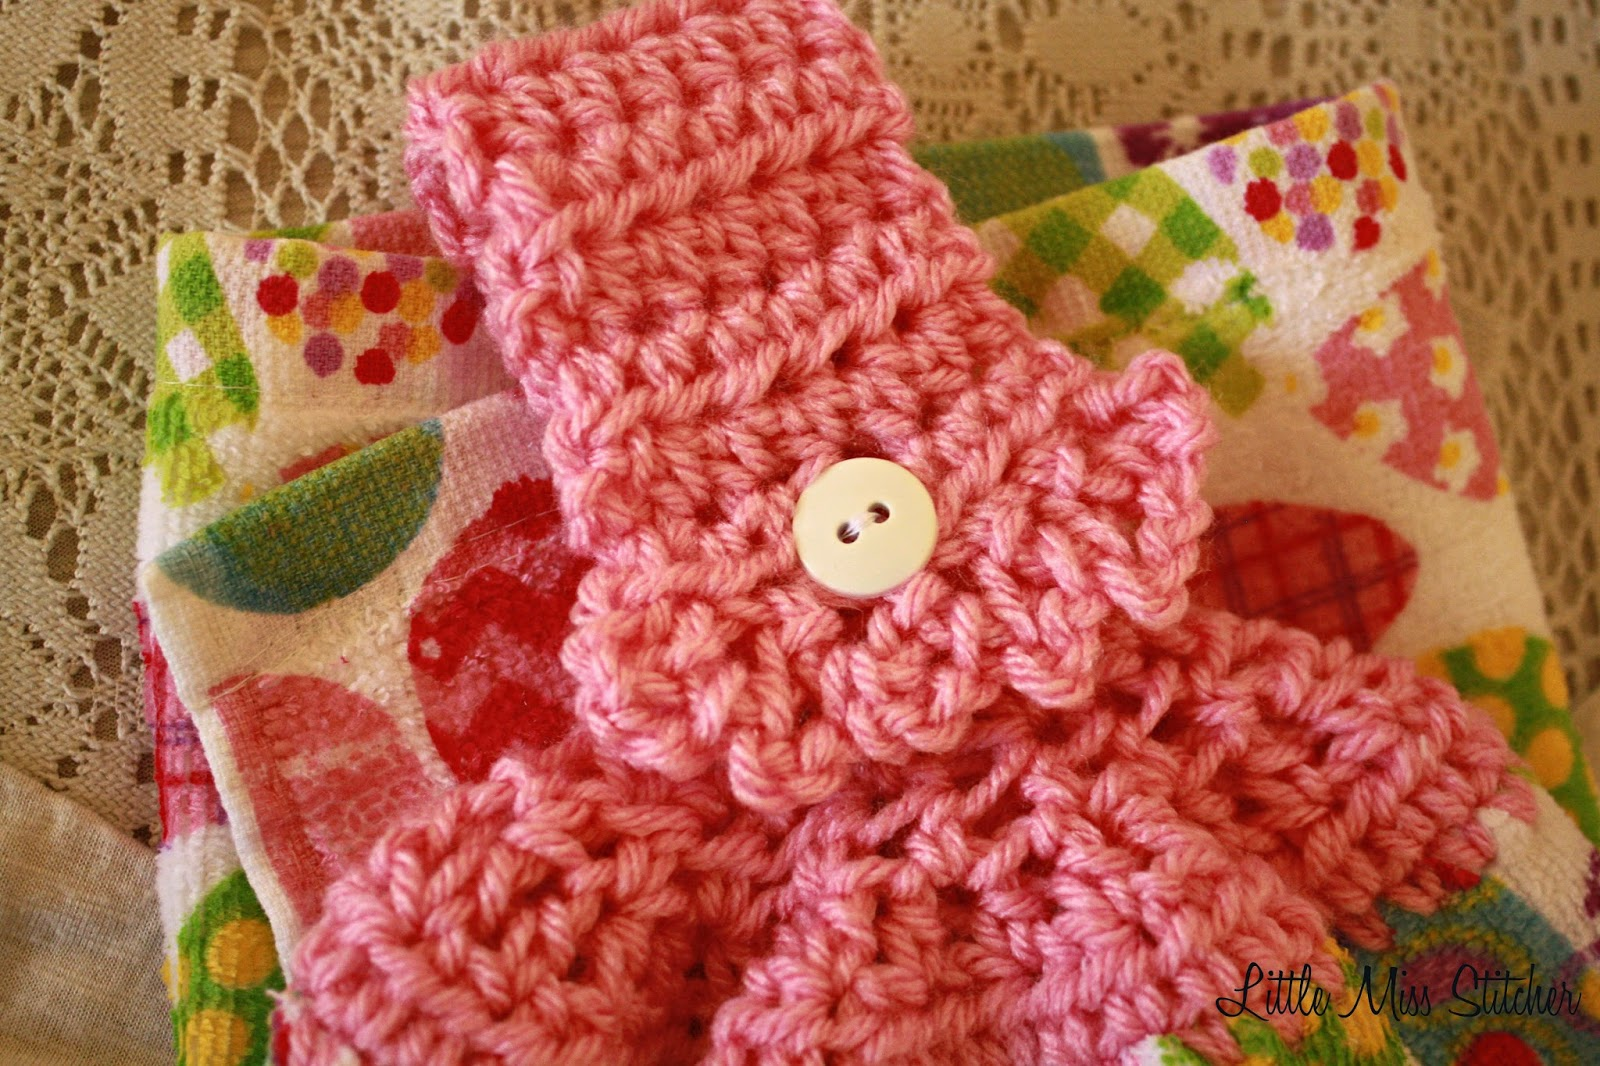 http://little-miss-stitcher.blogspot.com/2014/02/a-little-bit-frilly-crochet-towel-topper.html